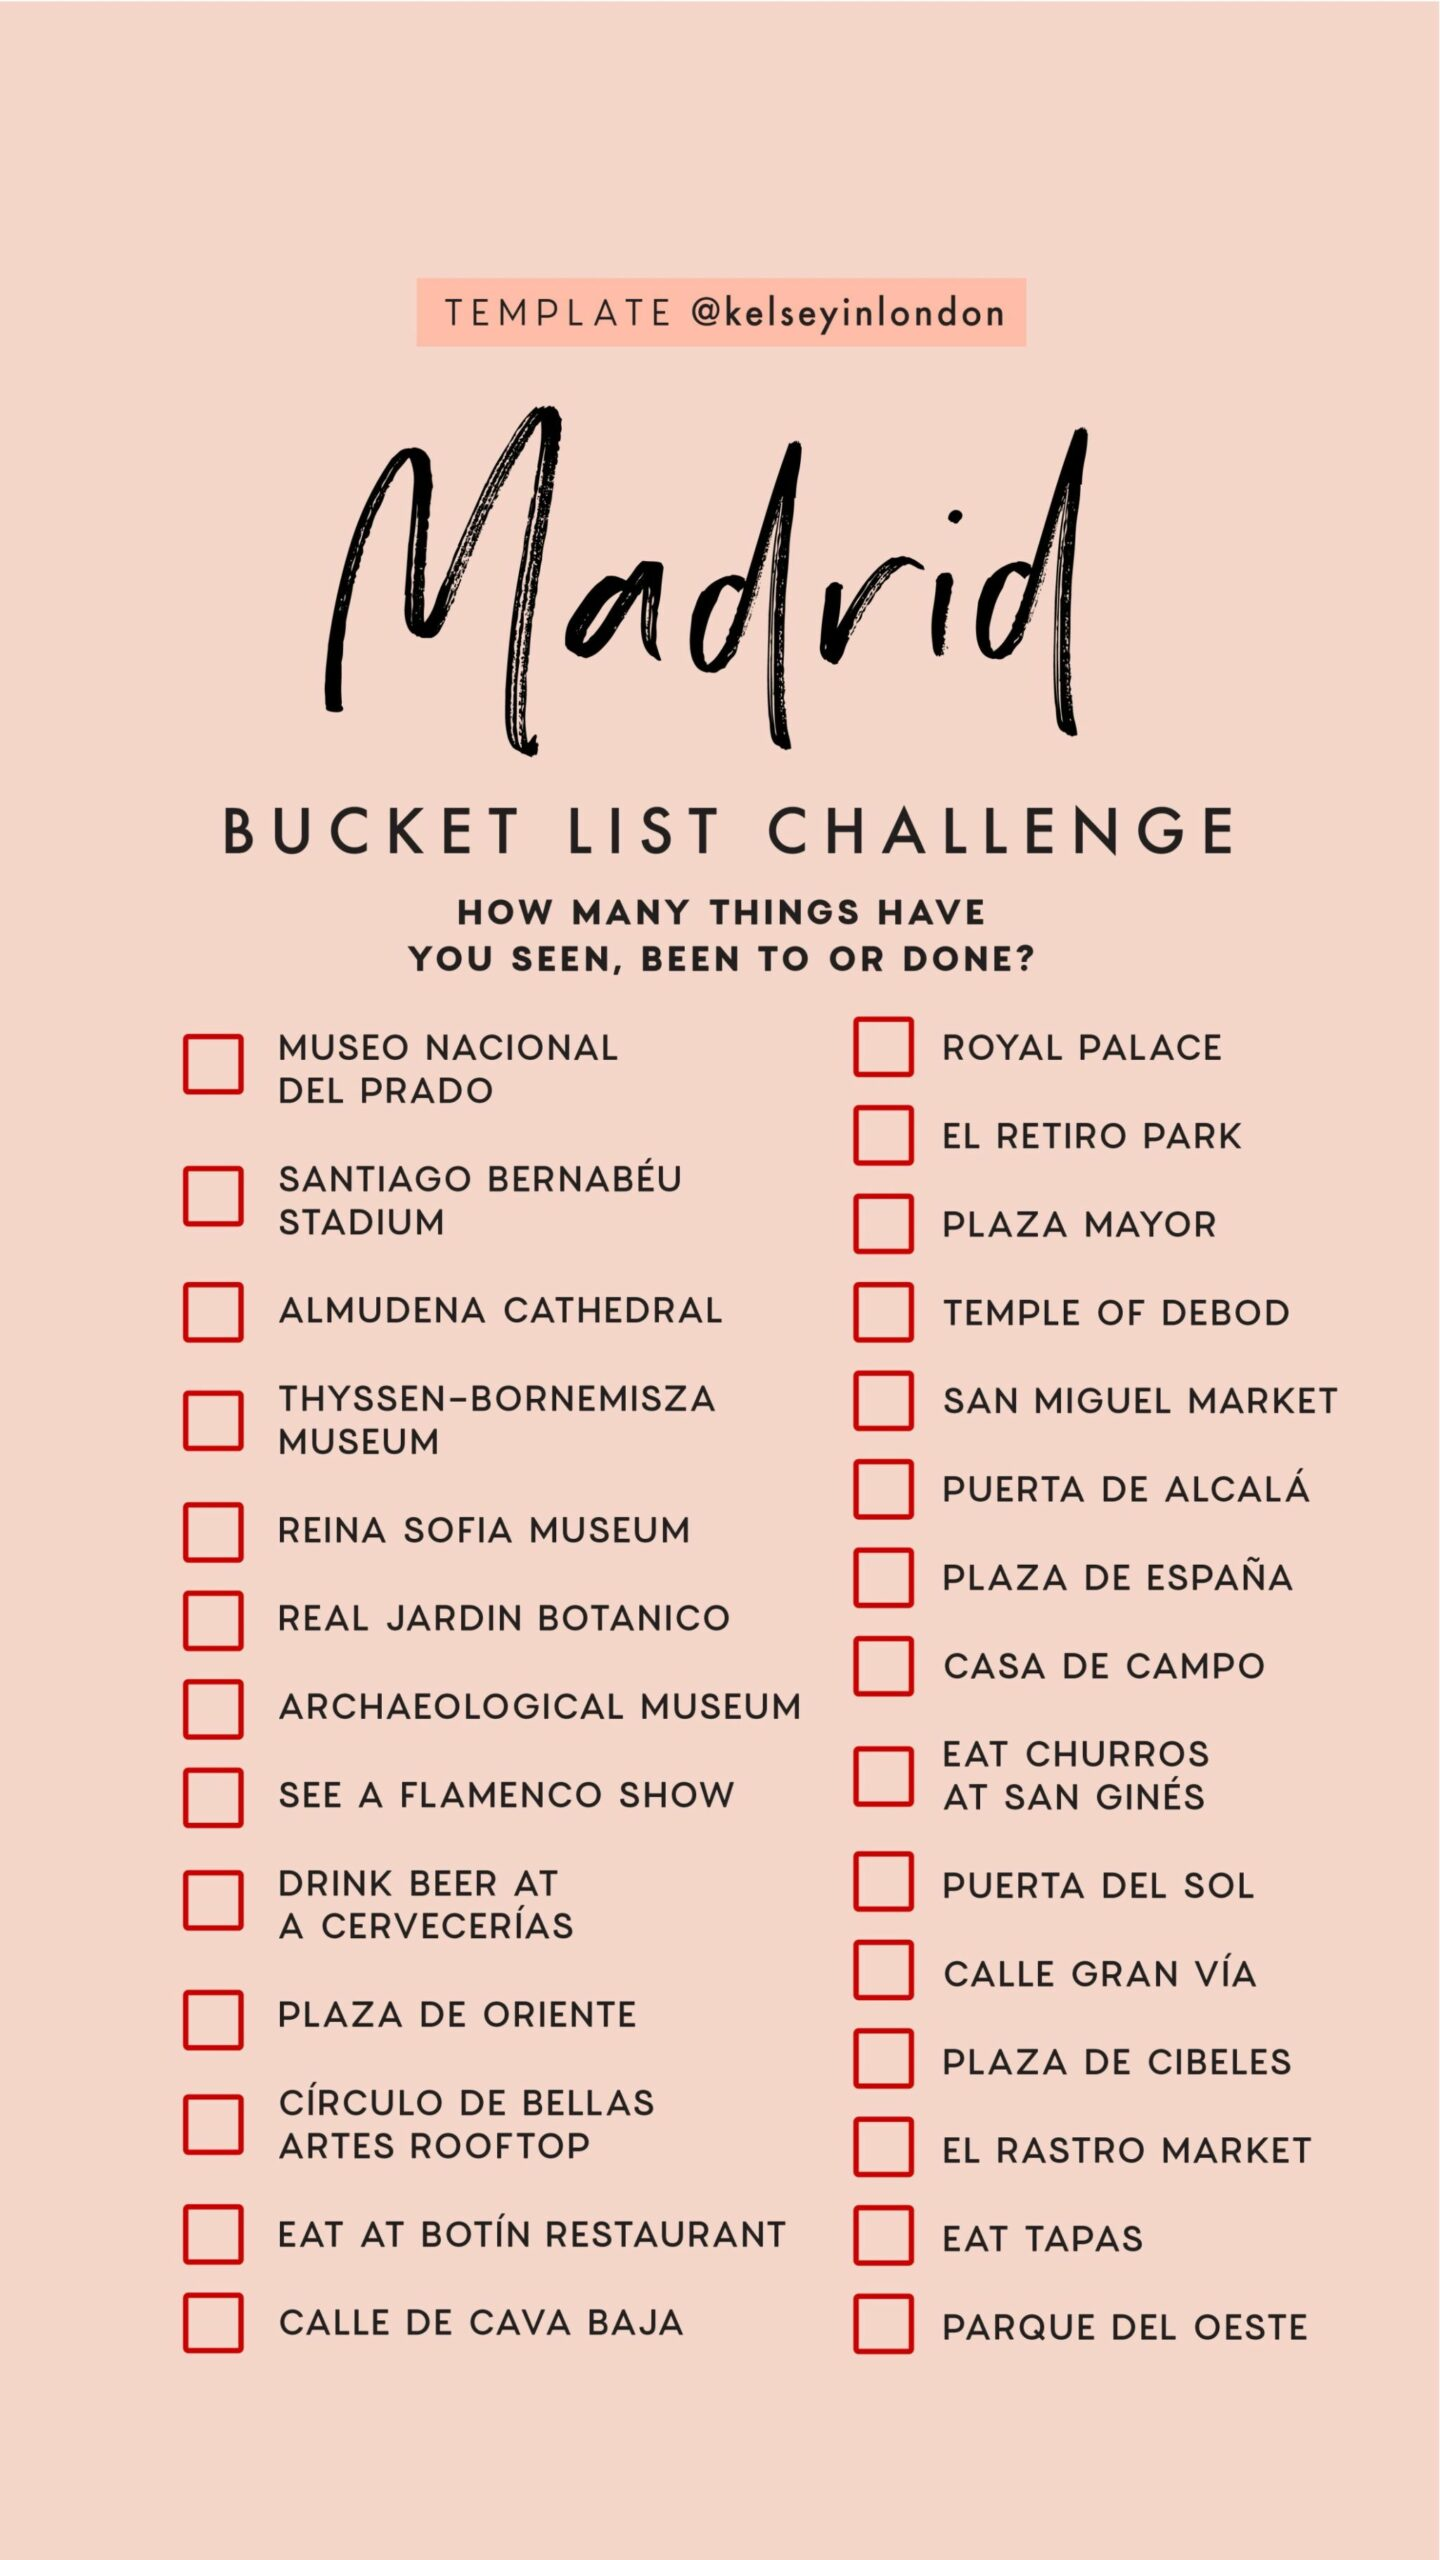 Top-things-to-do-in-Madrid-Madrid-Bucketlist-Instagram-Story-Template-kelseyinlondon-Kelsey-Heinrichs-What-to-do-in-Madrid-Where-to-go-in-Madrid-top-places-in-Madrid-